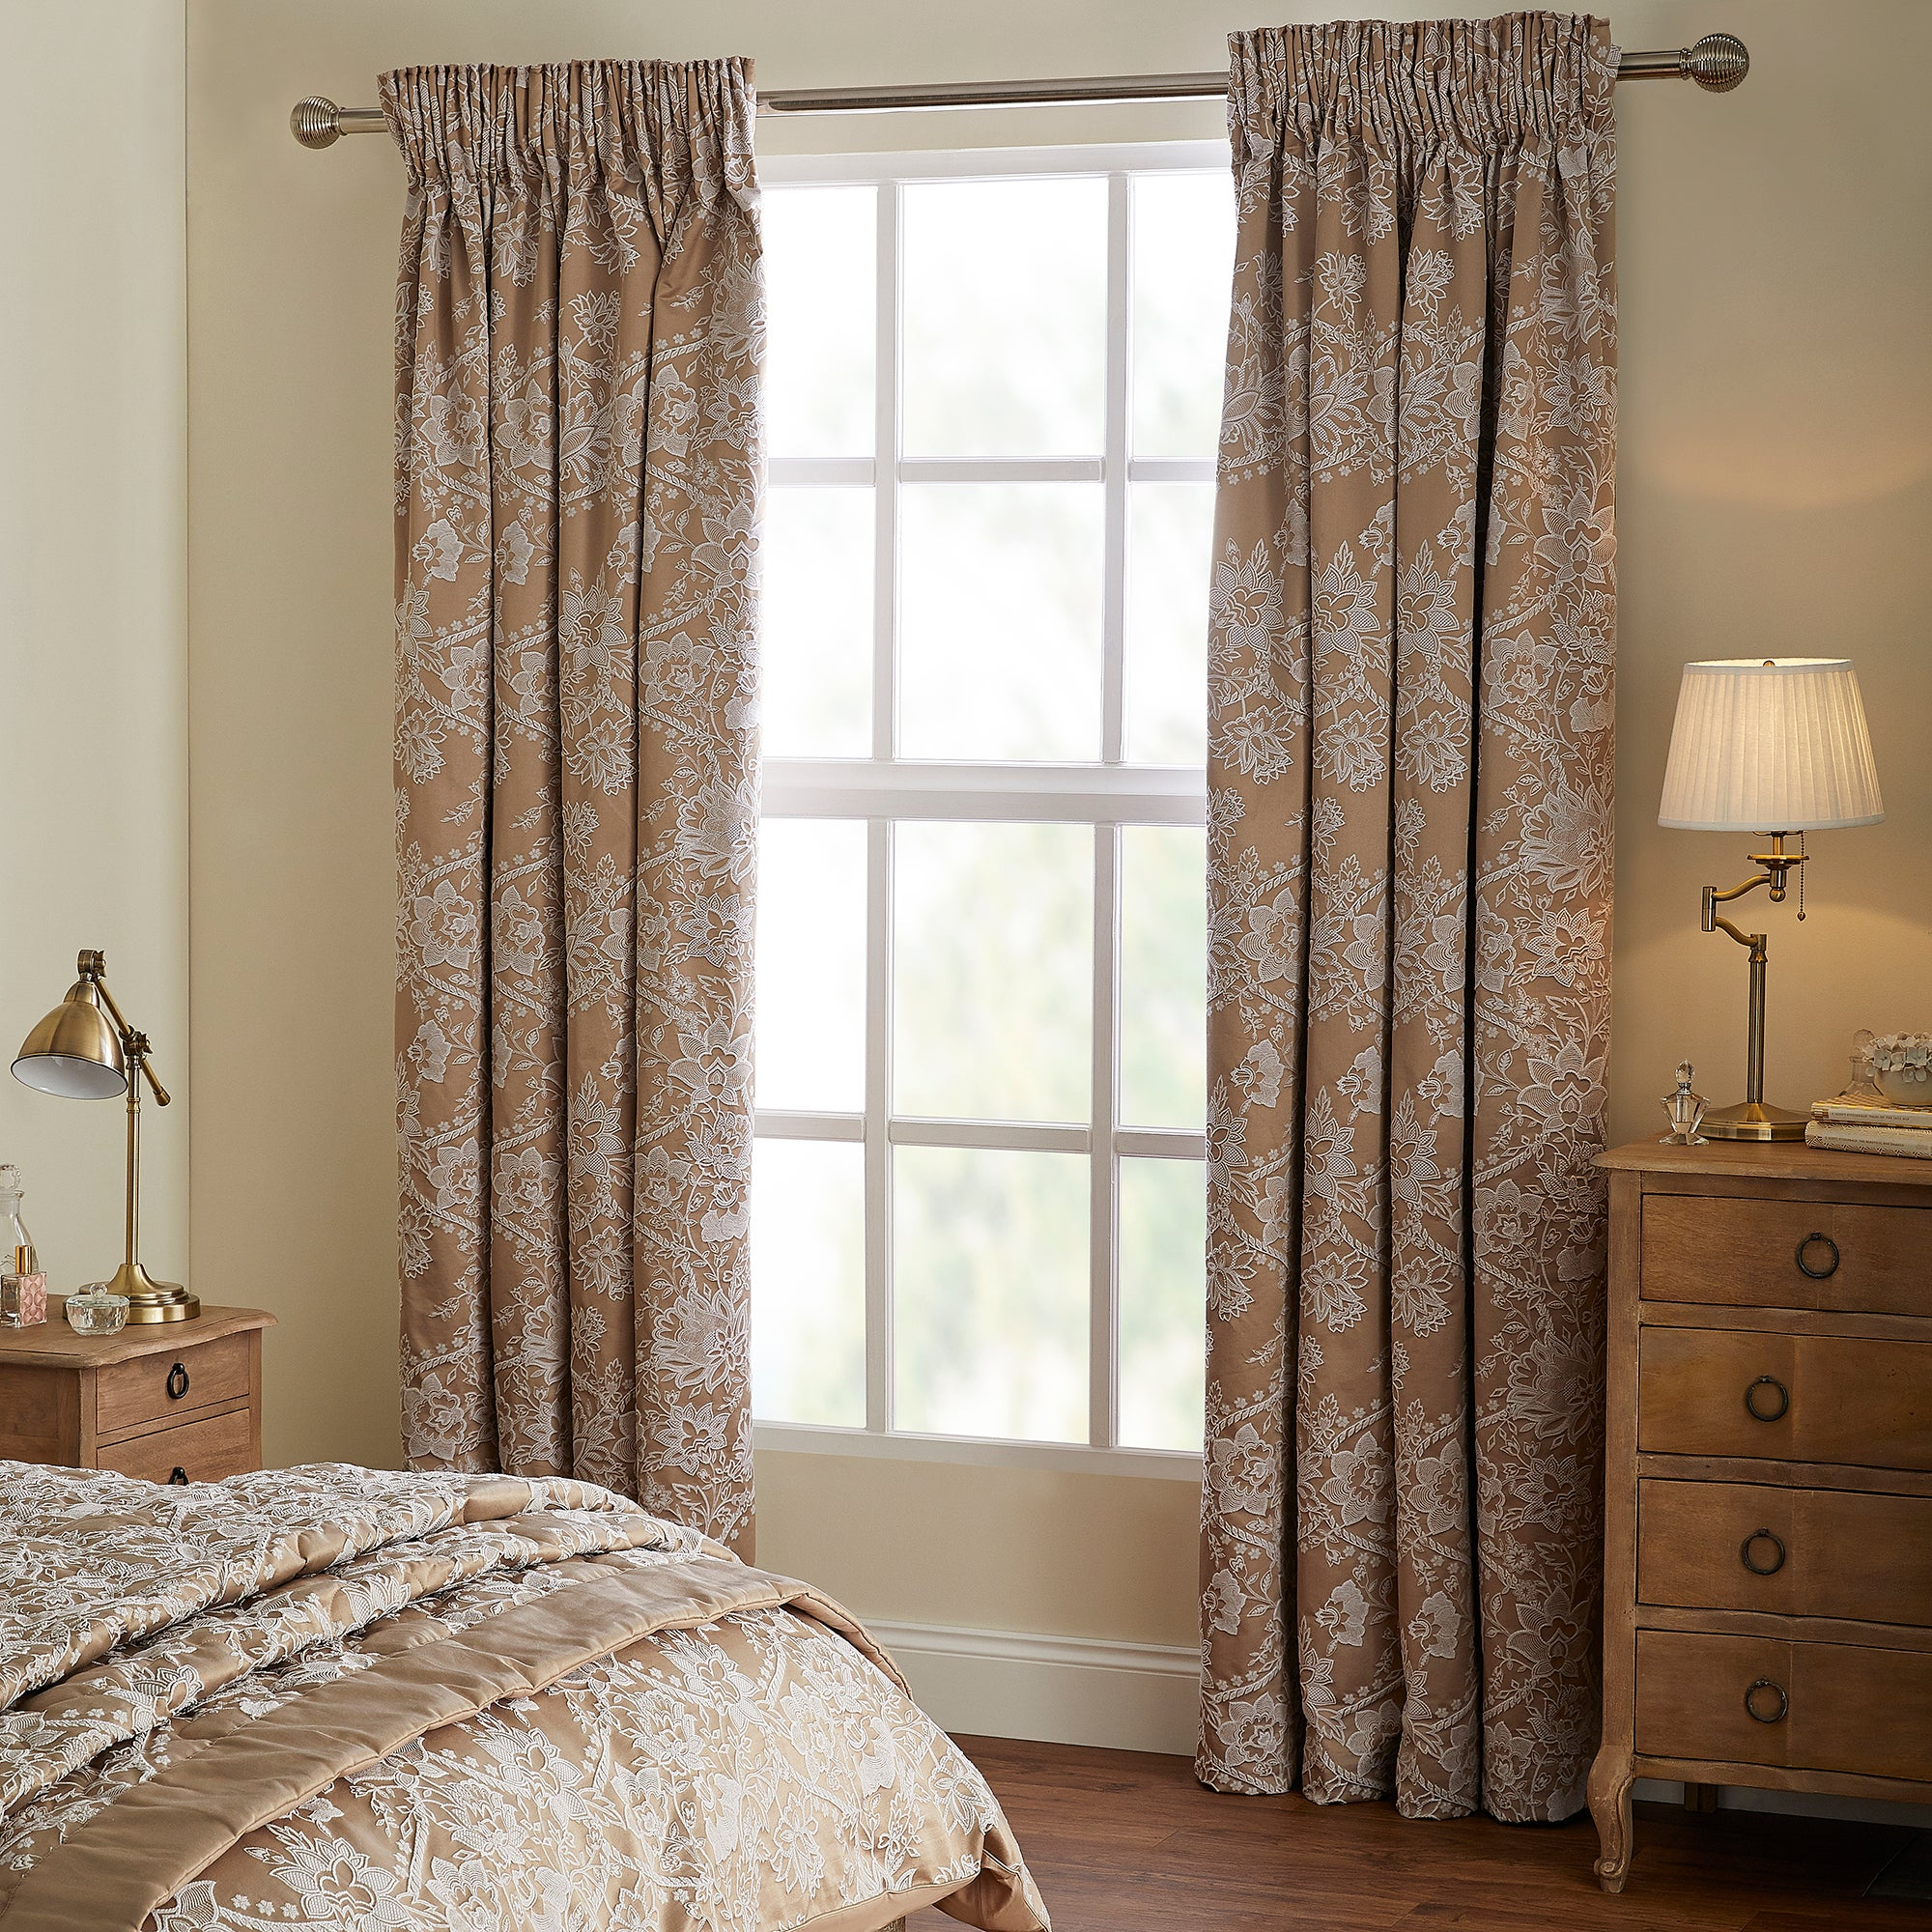 Photo of Dorma ottoman blackout curtains taupe